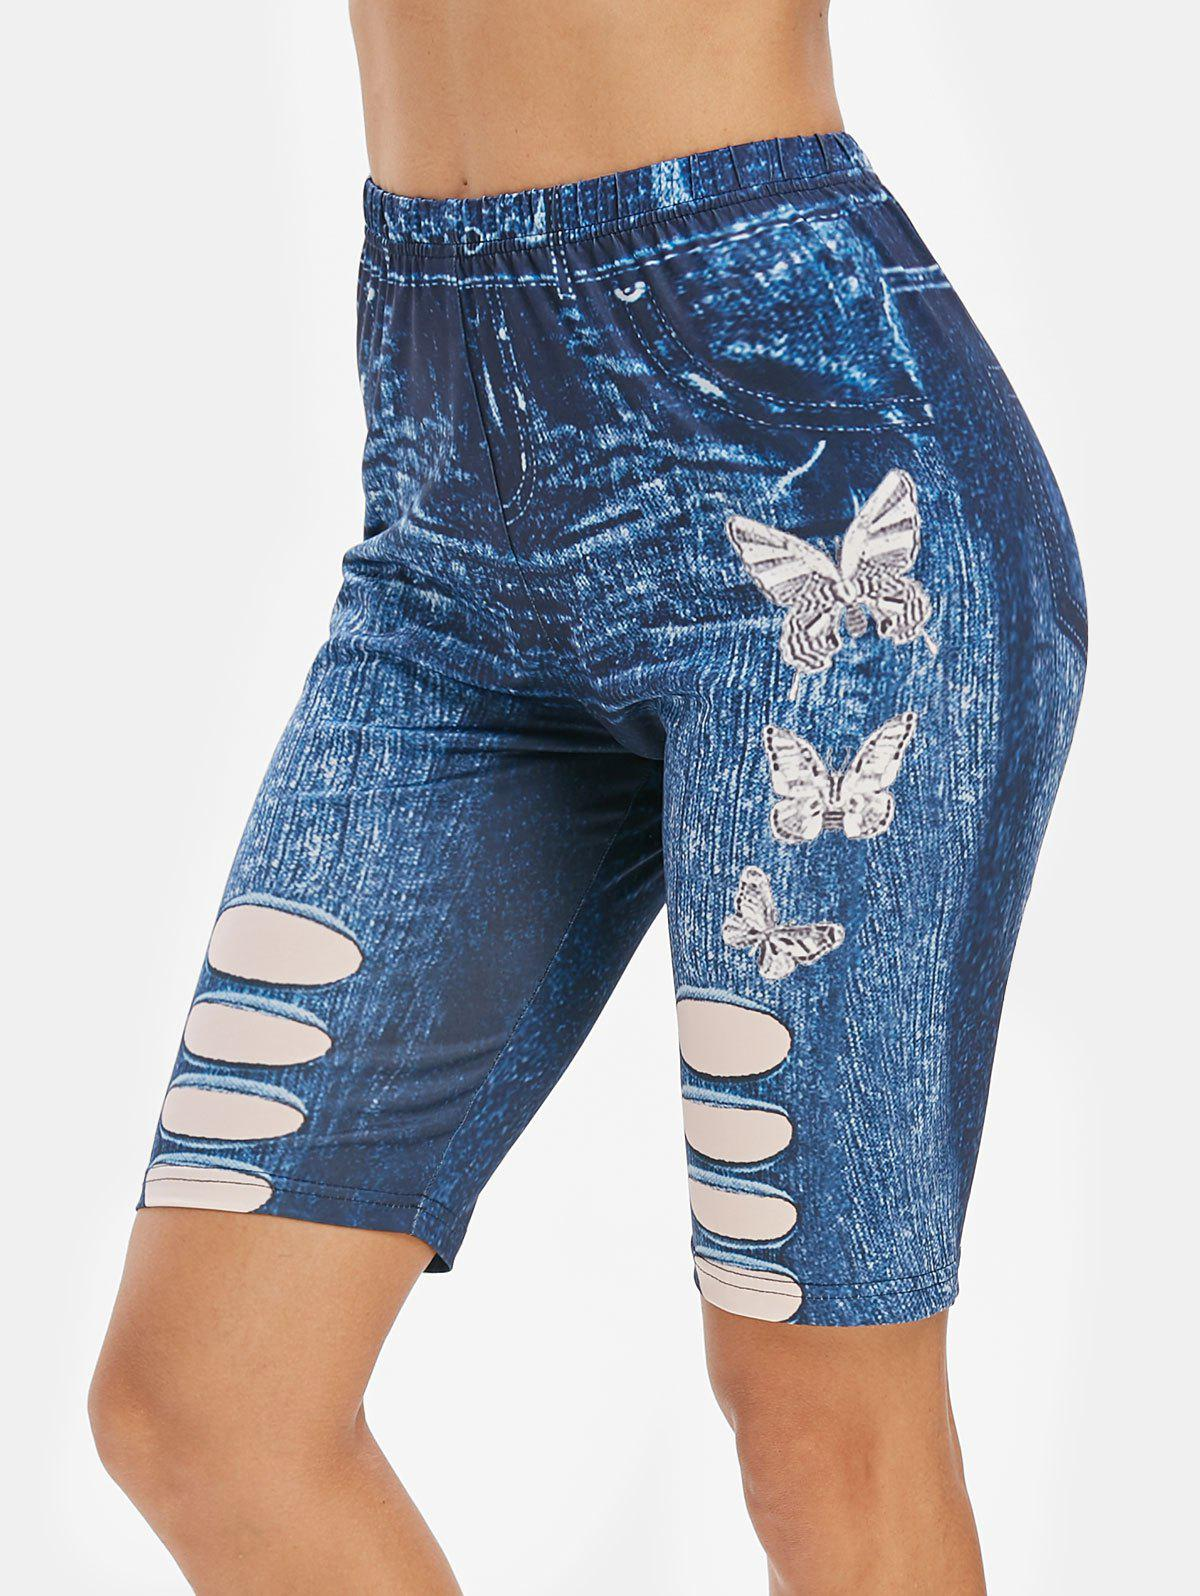 Discount Butterfly 3D Jean Print High Waisted Cycling Shorts